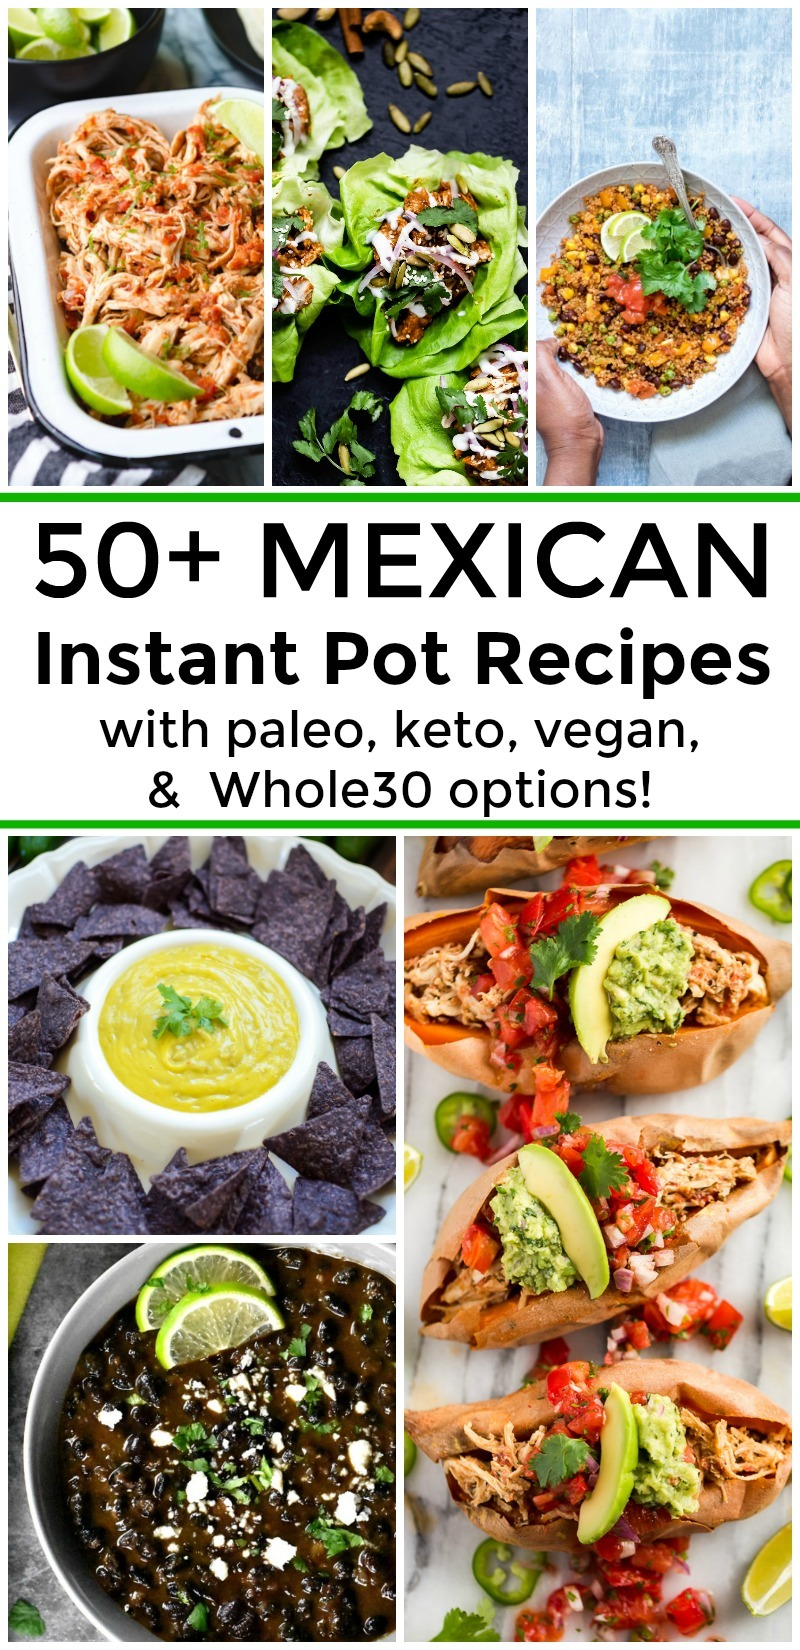 collage of 6 images of gluten-free mexican instant pot recipes with text overlay